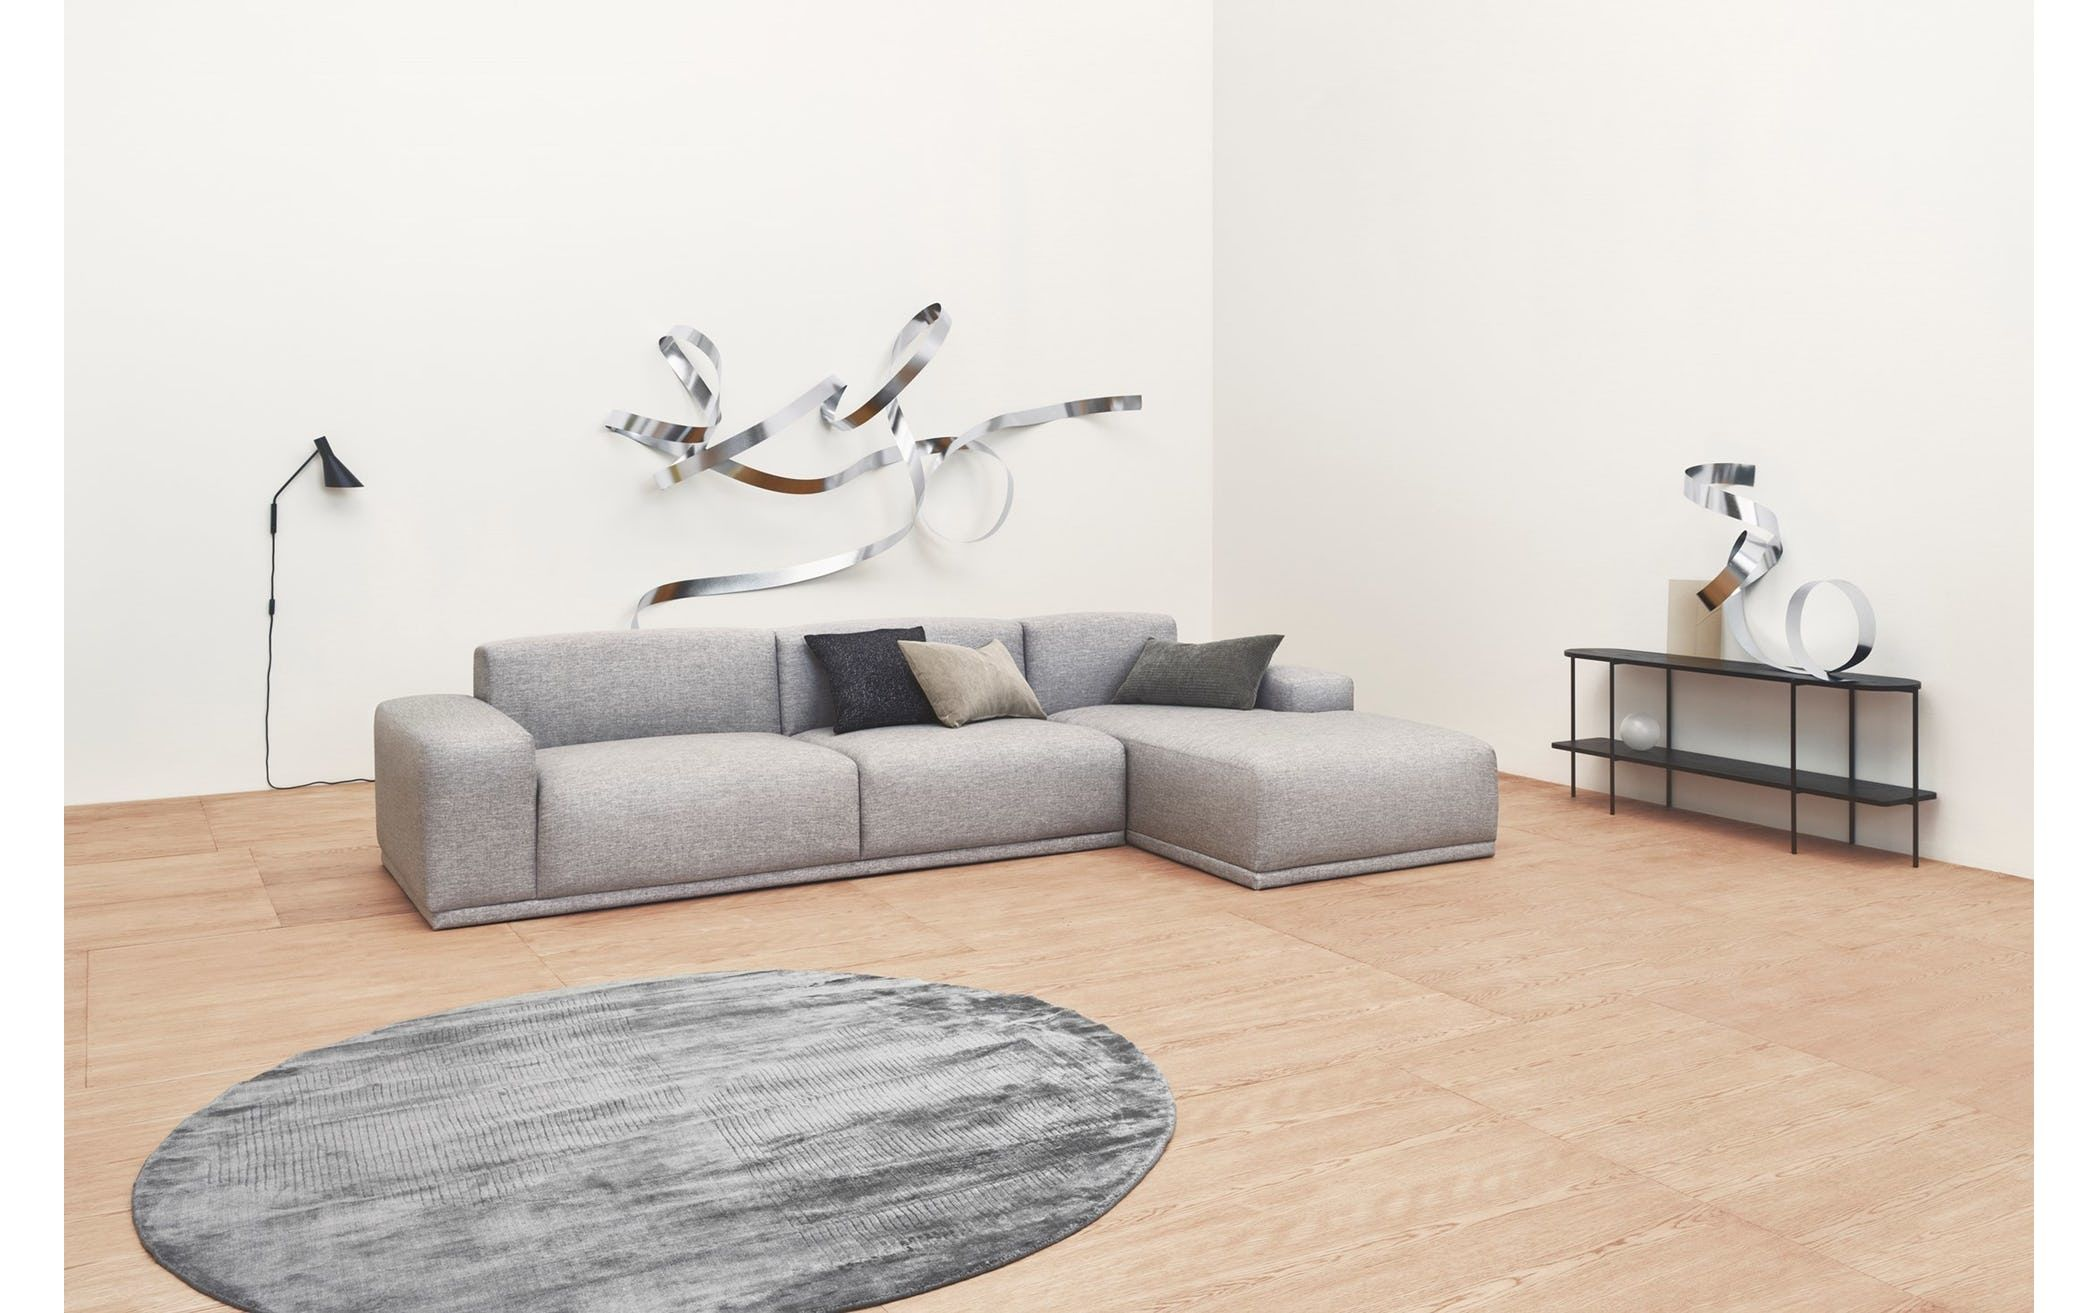 Shop The Zoe Sofa And More Contemporary Furniture Designs By